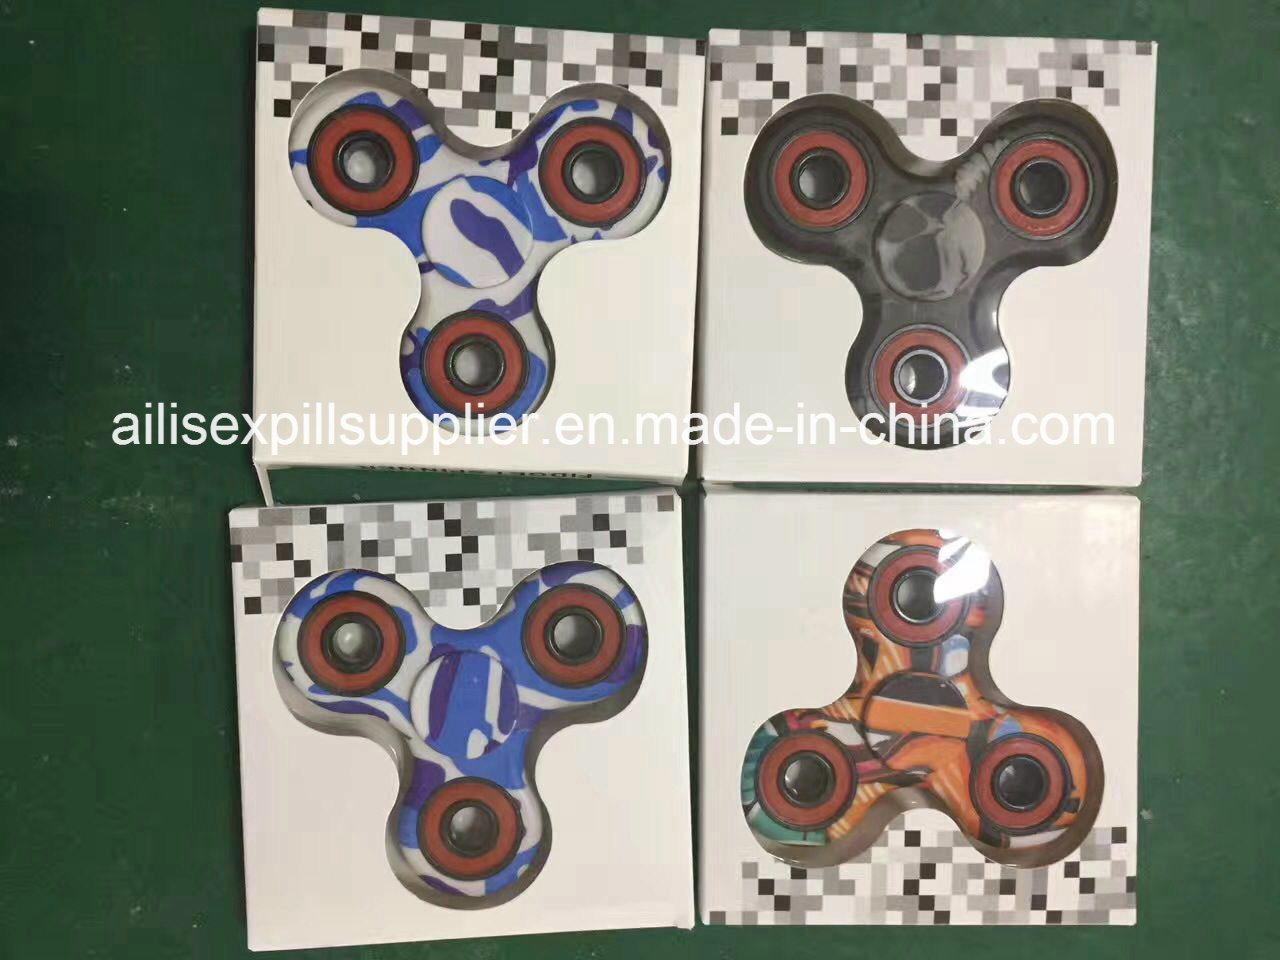 Camouflage Hot ABS Plastic or PVC Toy Fidget Hand Spinner/ Fidget Spinner